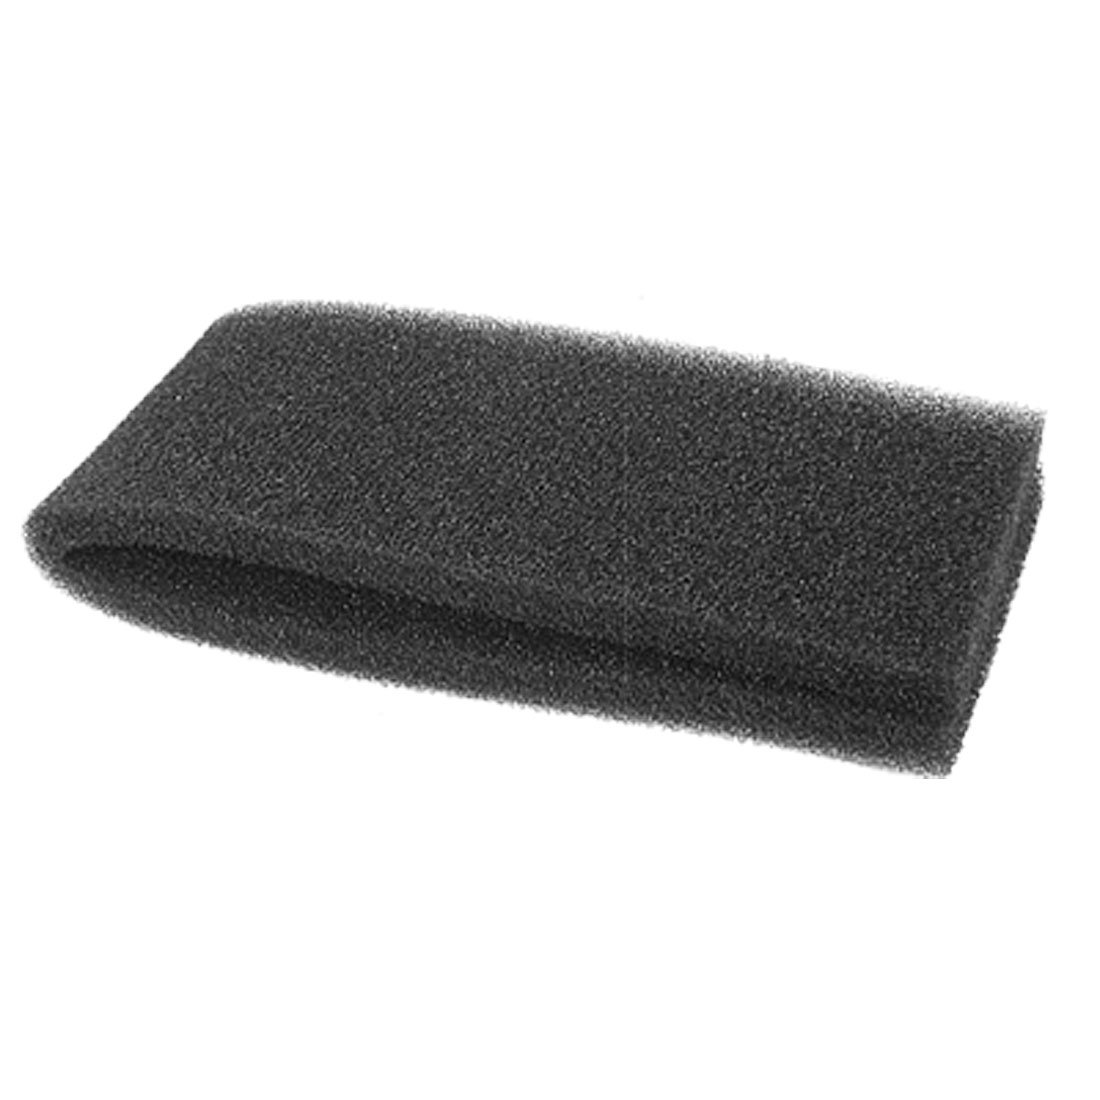 Black biochemical filter foam pond filtration fish tank for Pond filter sponges